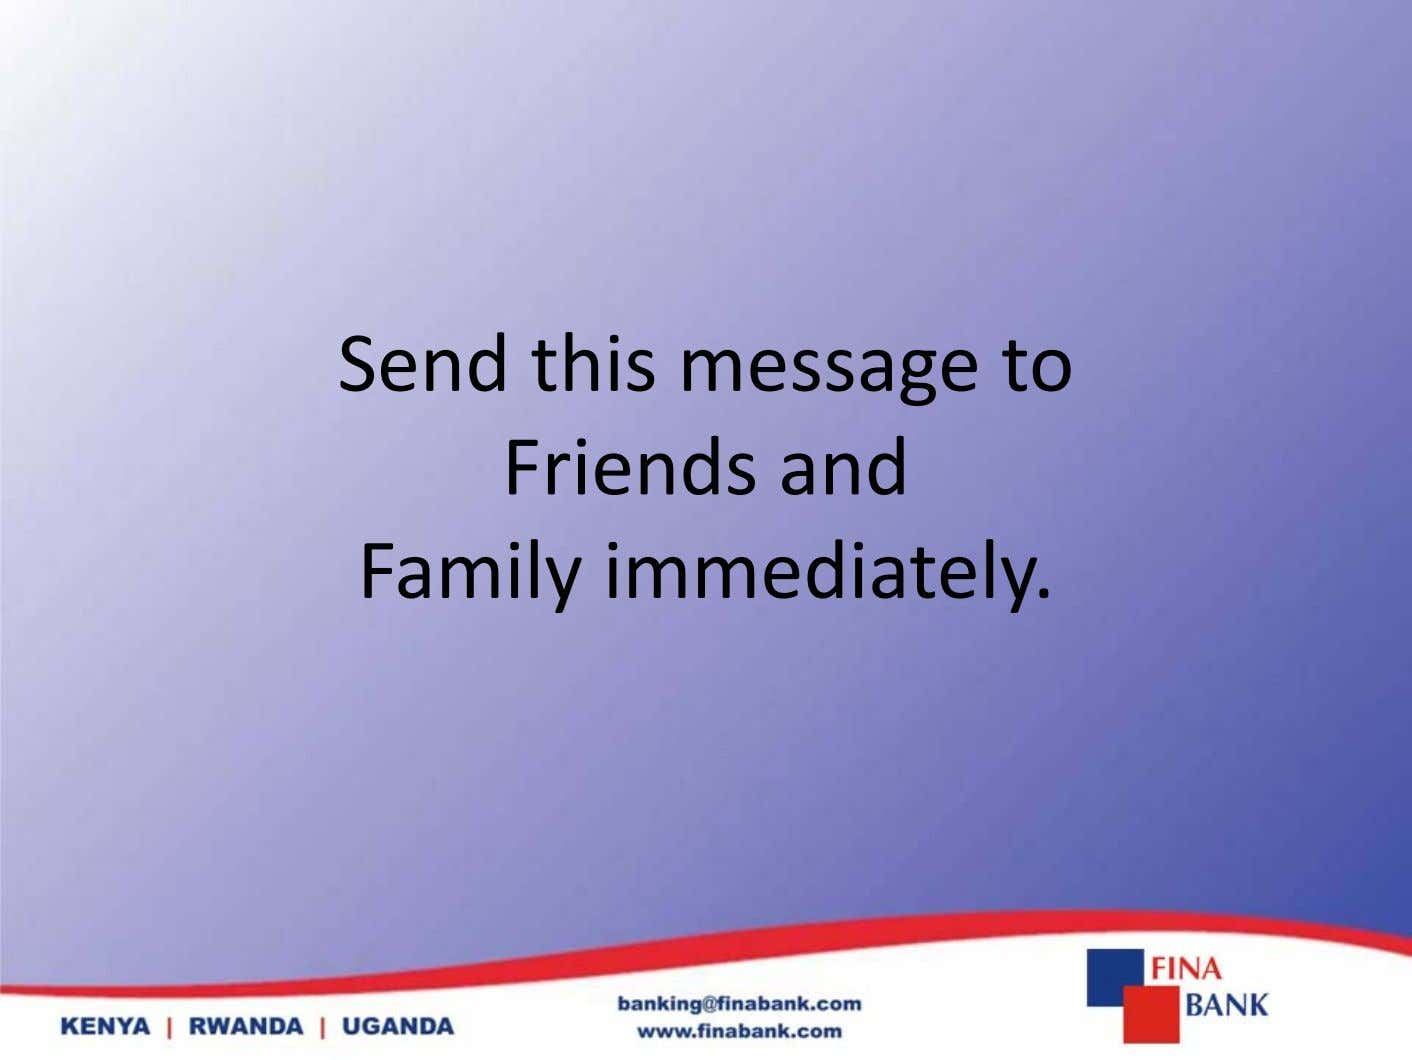 Send this message to F riends and Famil y immediatel y.